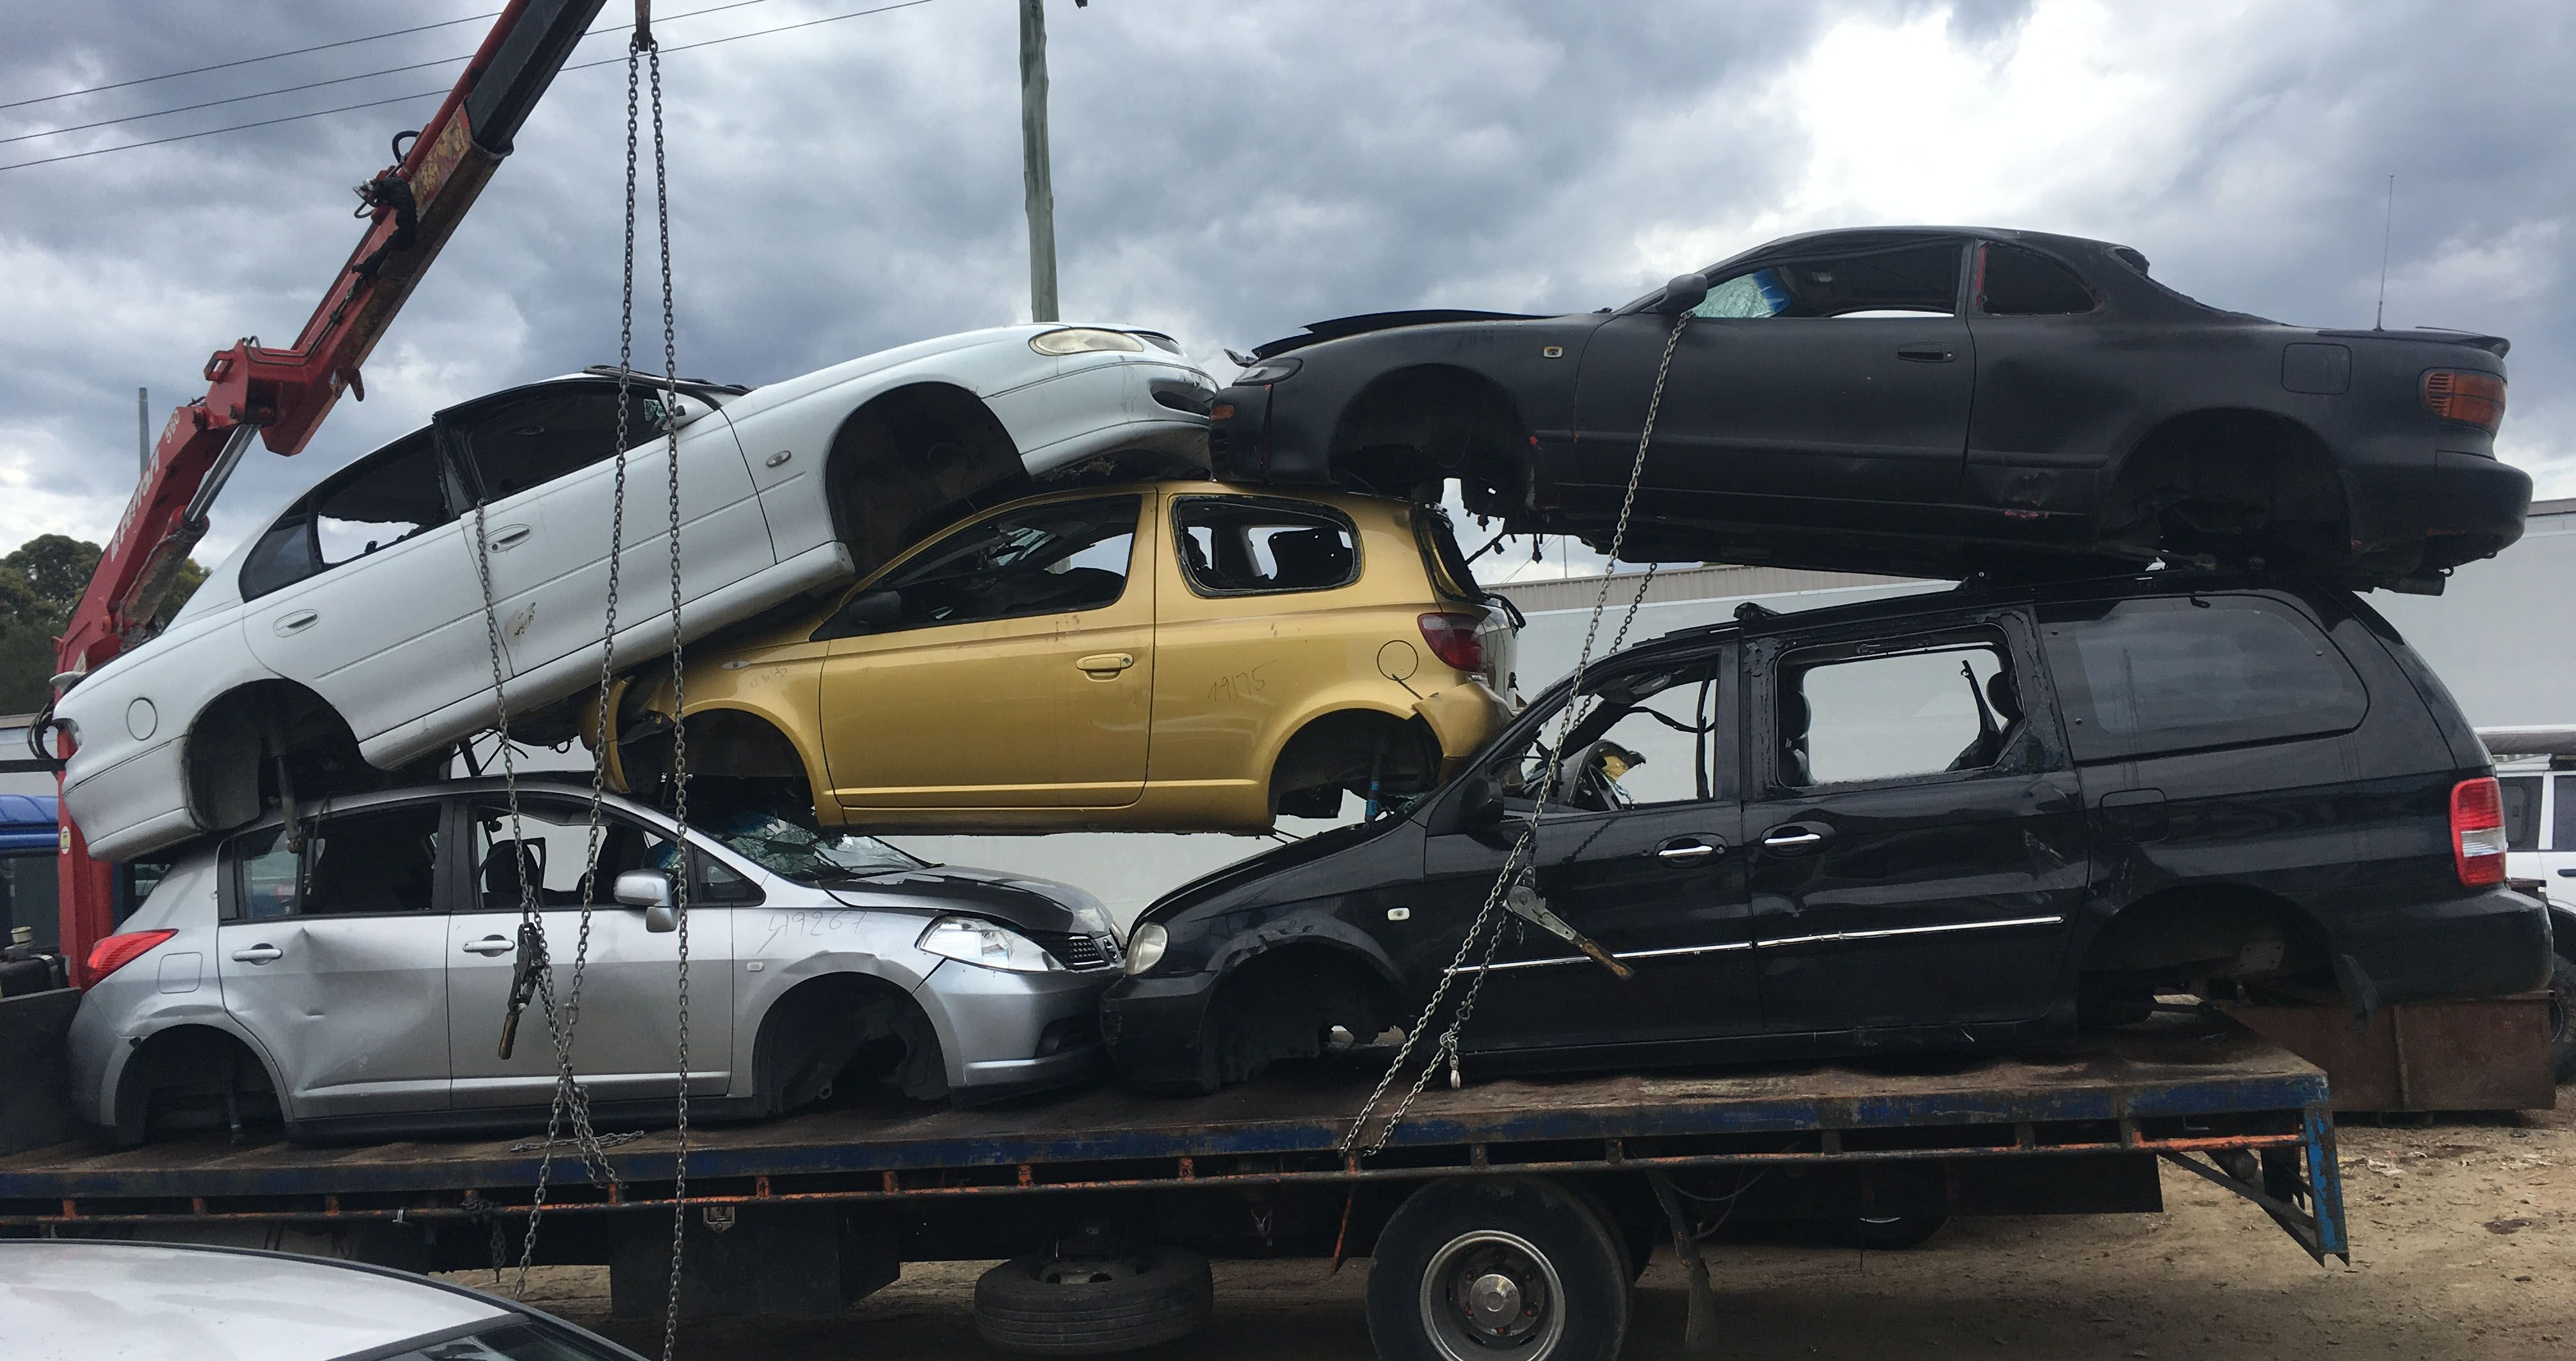 Amiry Enterprises Is One Of The Most Reputed Carremoval Companies